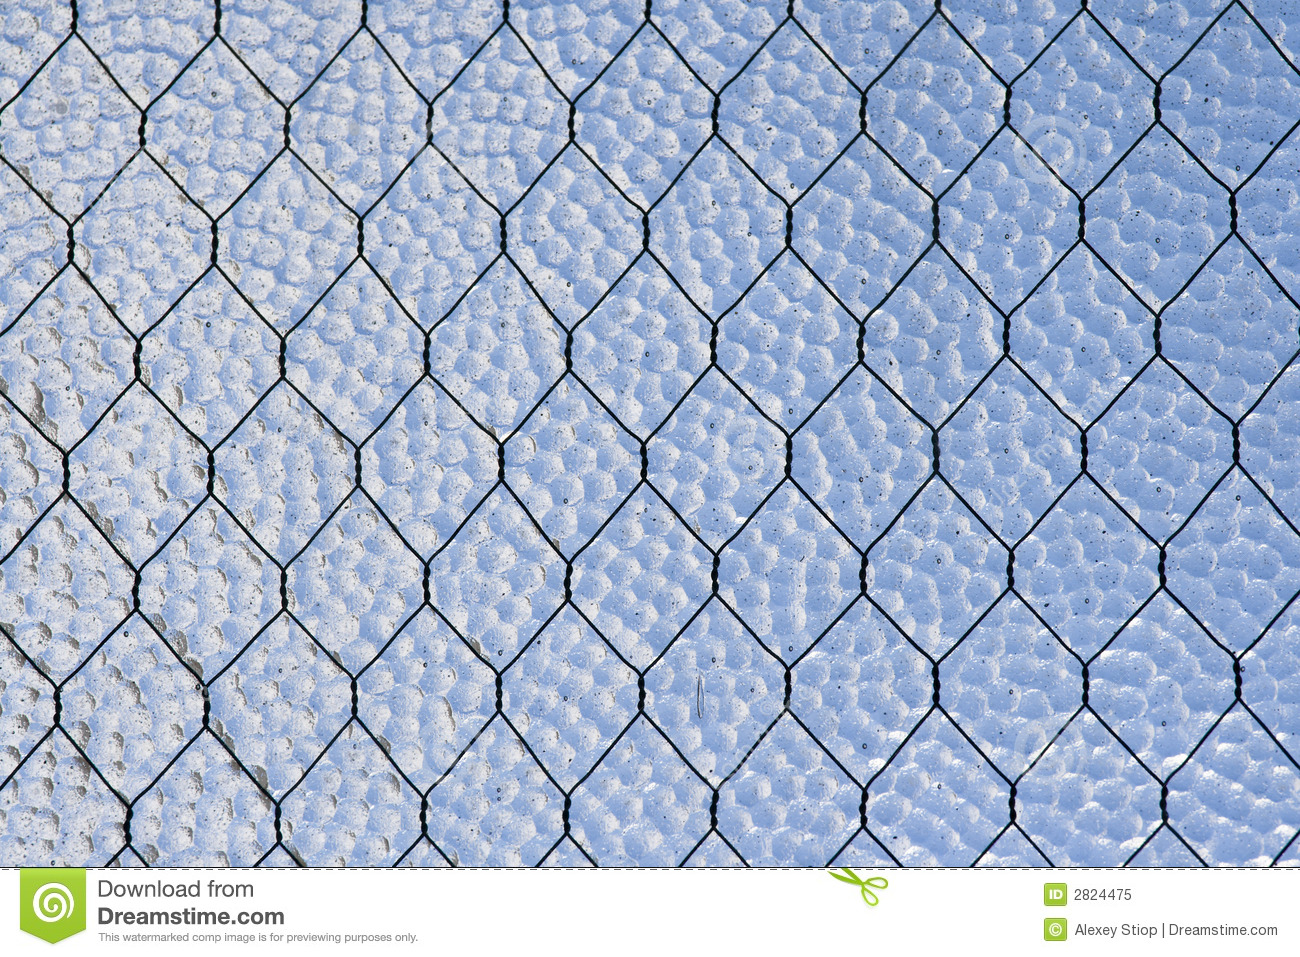 Glass and wire background stock image. Image of pattern - 2824475